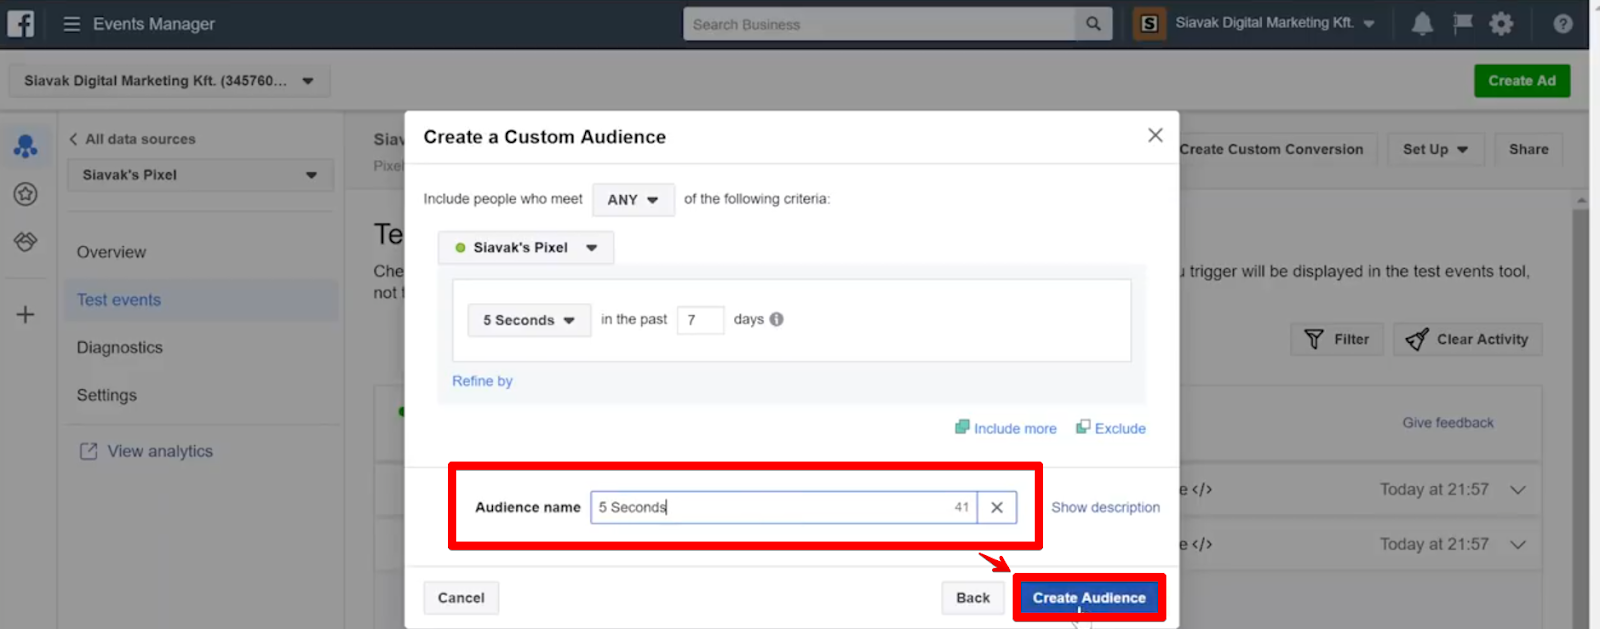 Set audience name such as 5 Seconds and click Create Audience